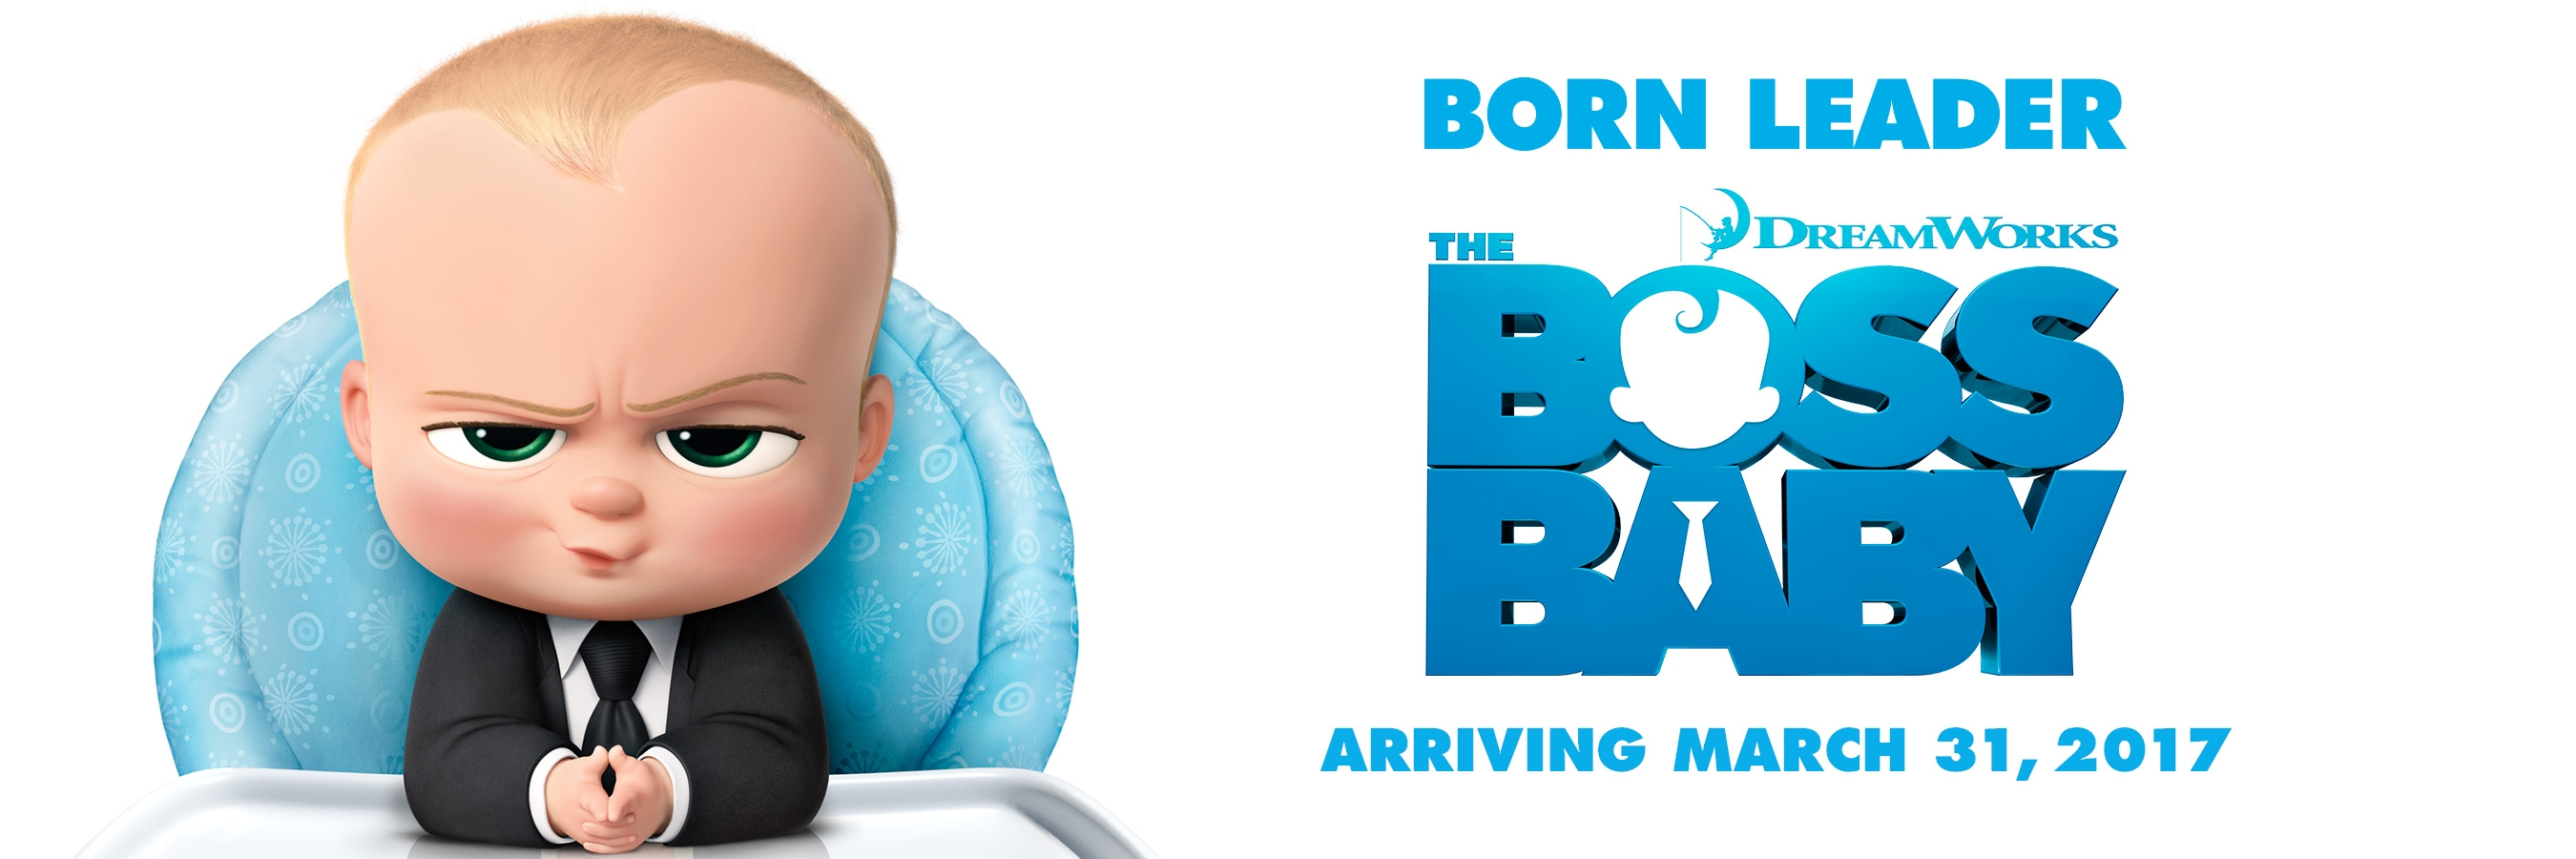 The Boss Baby Trailer 2 Released Diskingdom Com